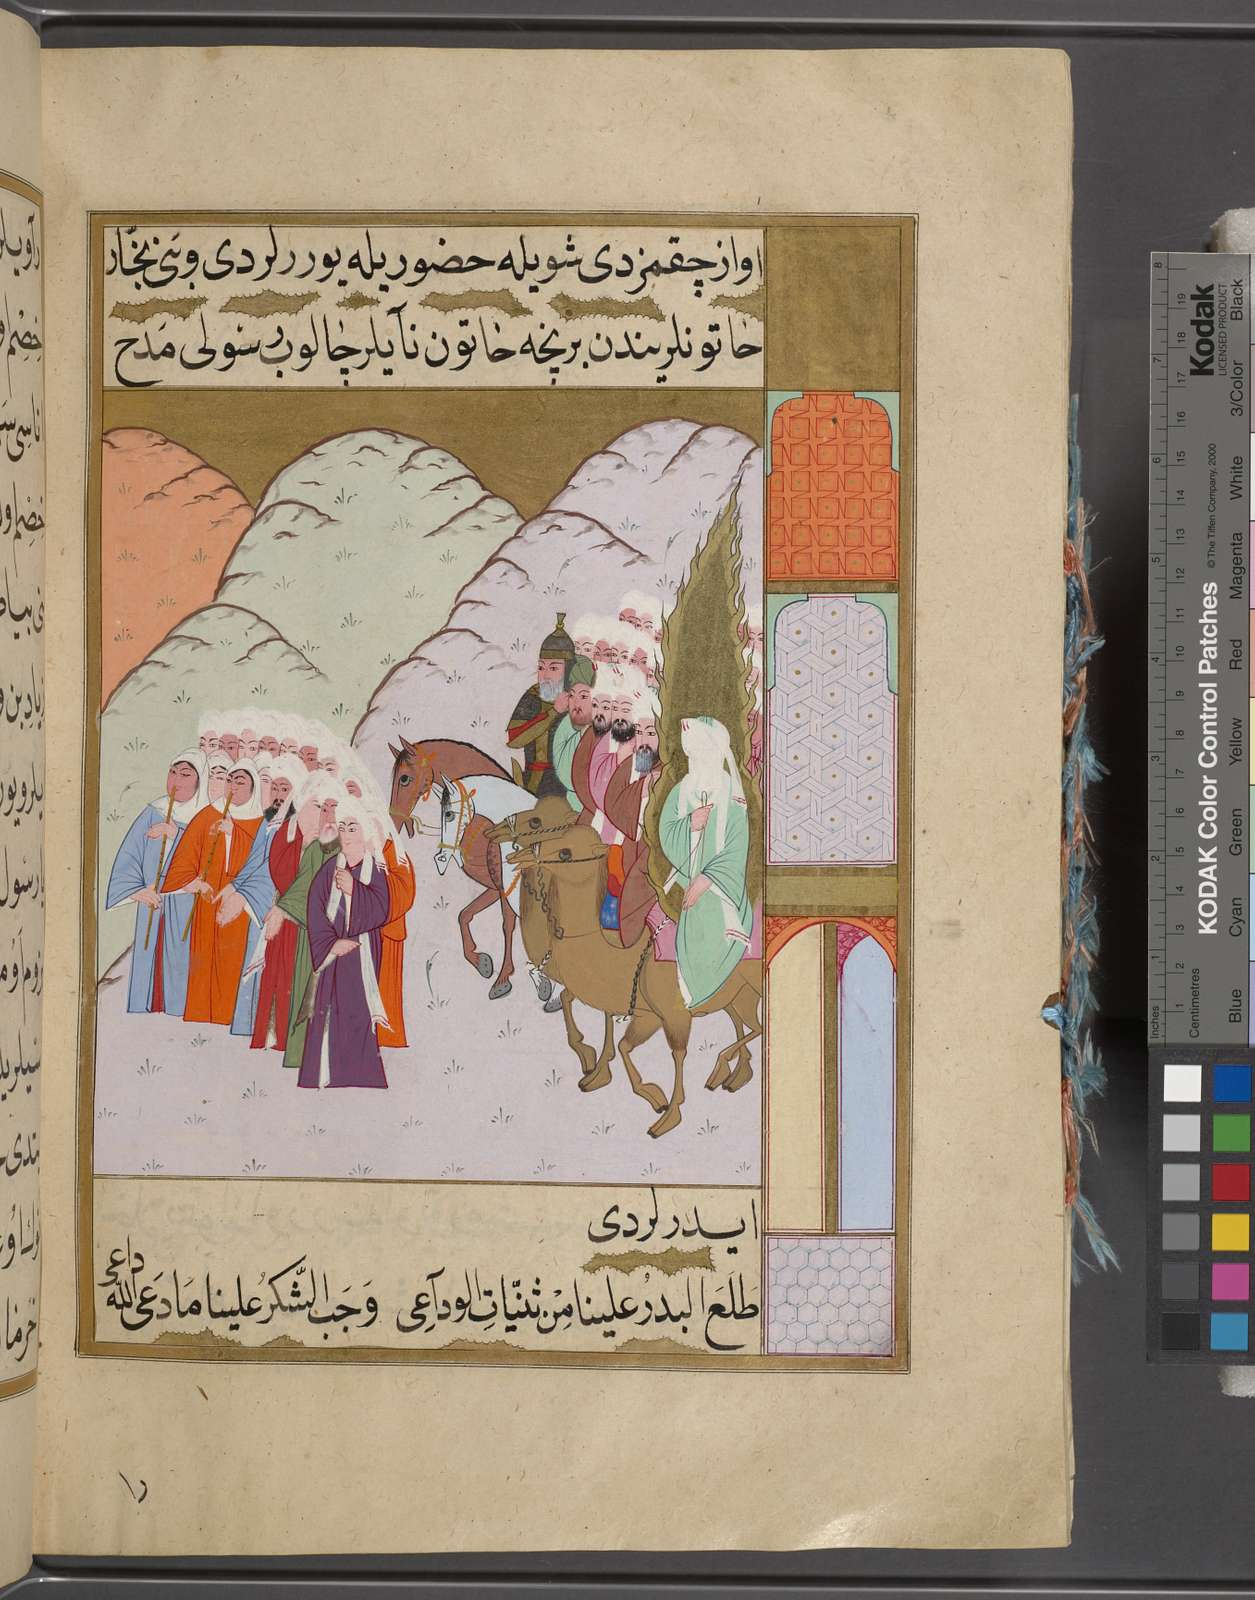 Muhammad accompanied by his followers rides through the streets of Medina.